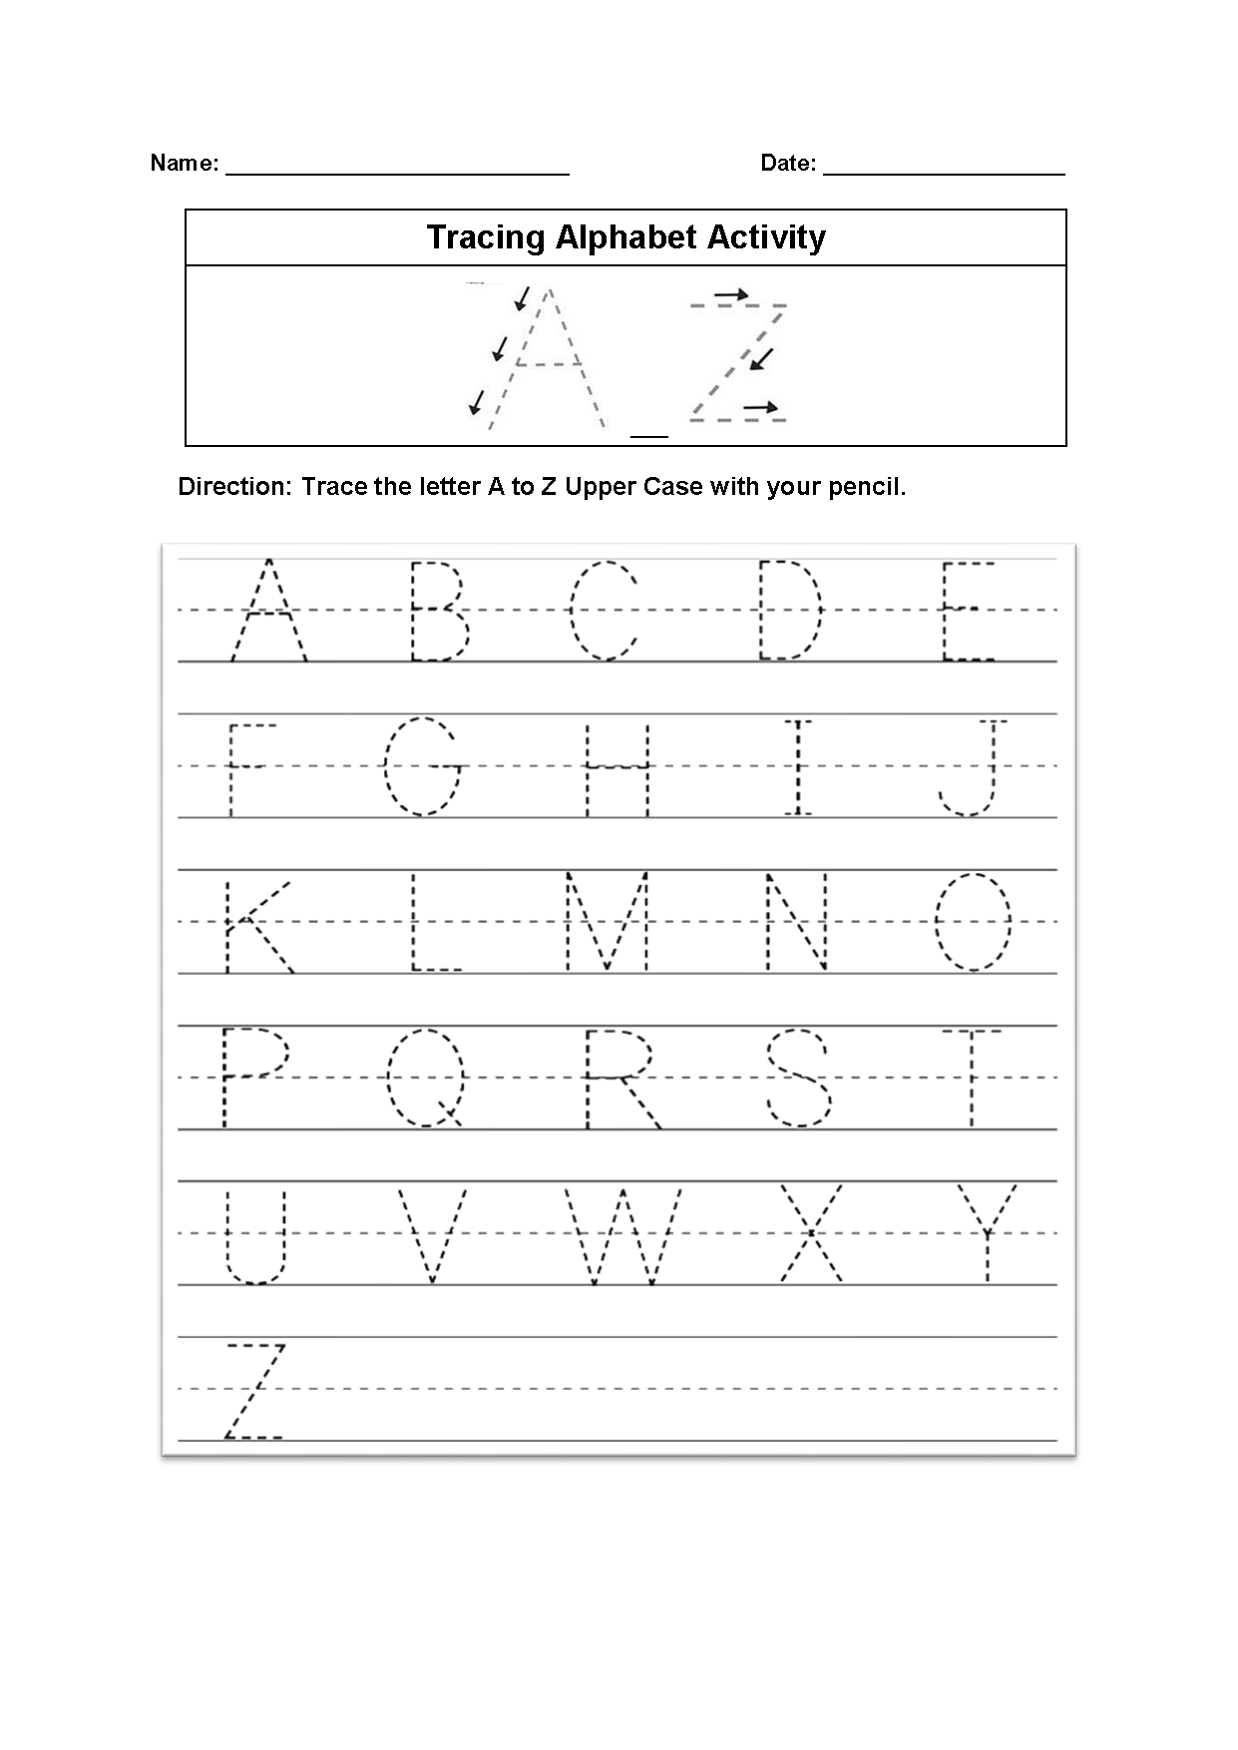 Tracing Alphabet Worksheets - Kids Learning Activity